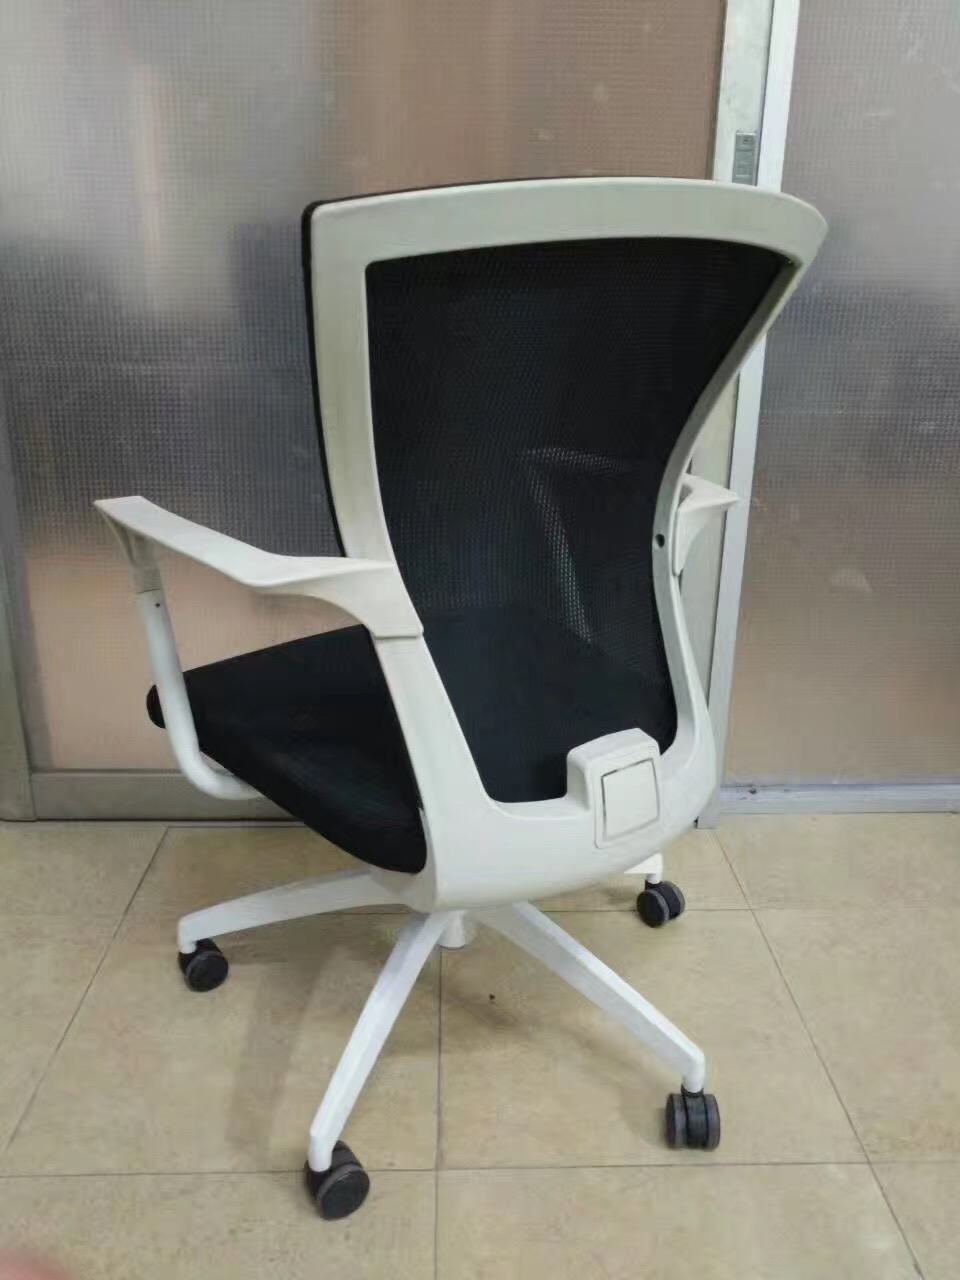 Comfort Ergonomic Mesh High Back Multifunction Swivel Office Chair, Office Task Chair,mesh office chair